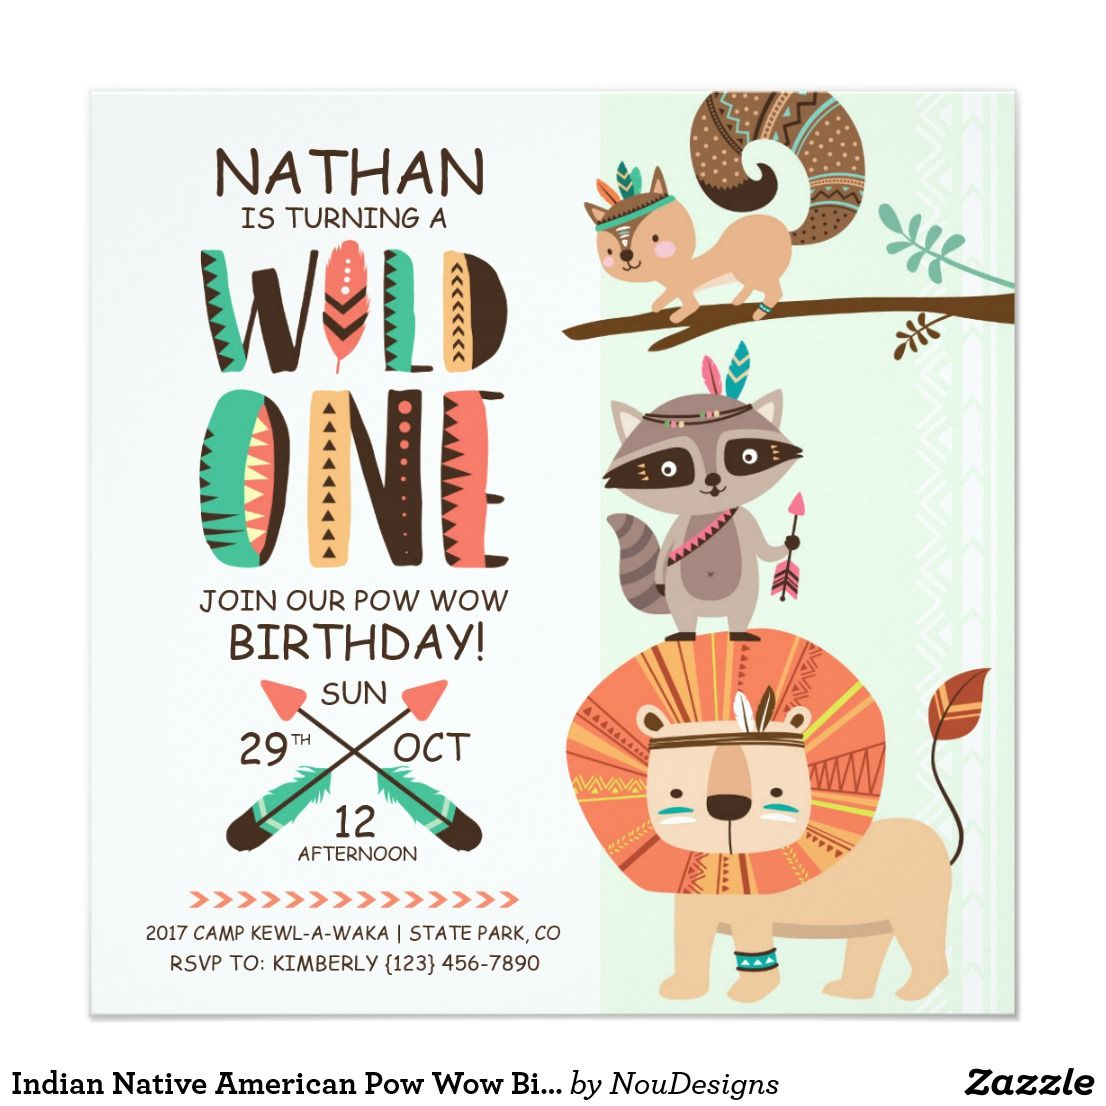 Indian Native American Pow Wow Birthday Invitation Mom And Kids